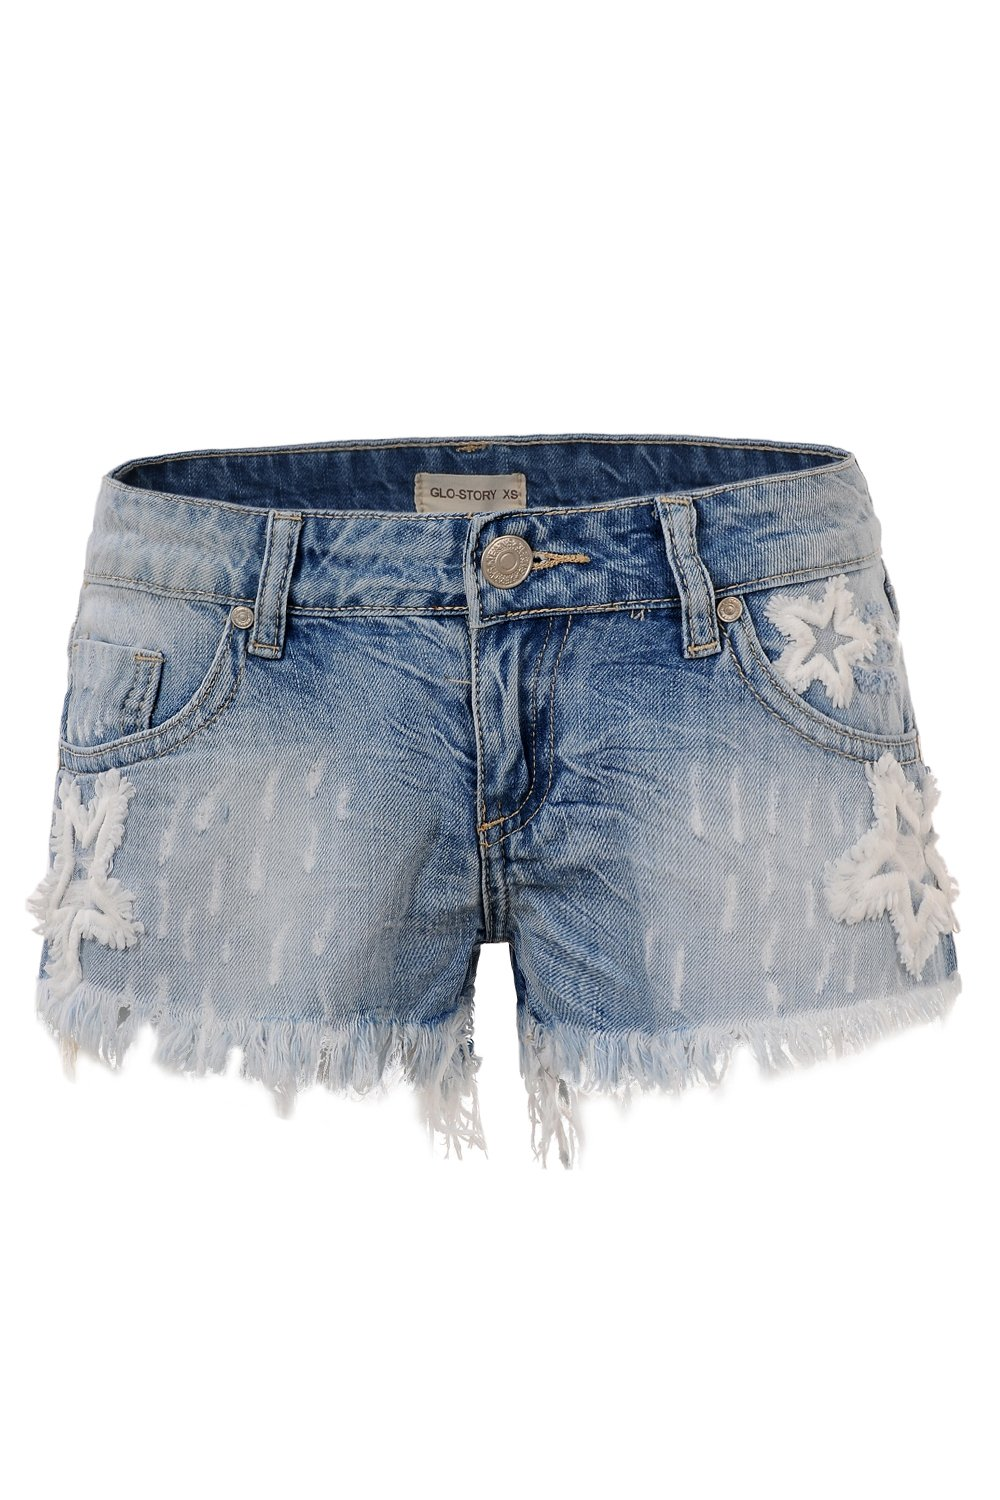 GLOSTORY Women's Causal Low Waist Tassels Skinny Juniors Vintage Denim Shorts WNK-2191 (M, Light Blue) by GLOSTORY (Image #1)